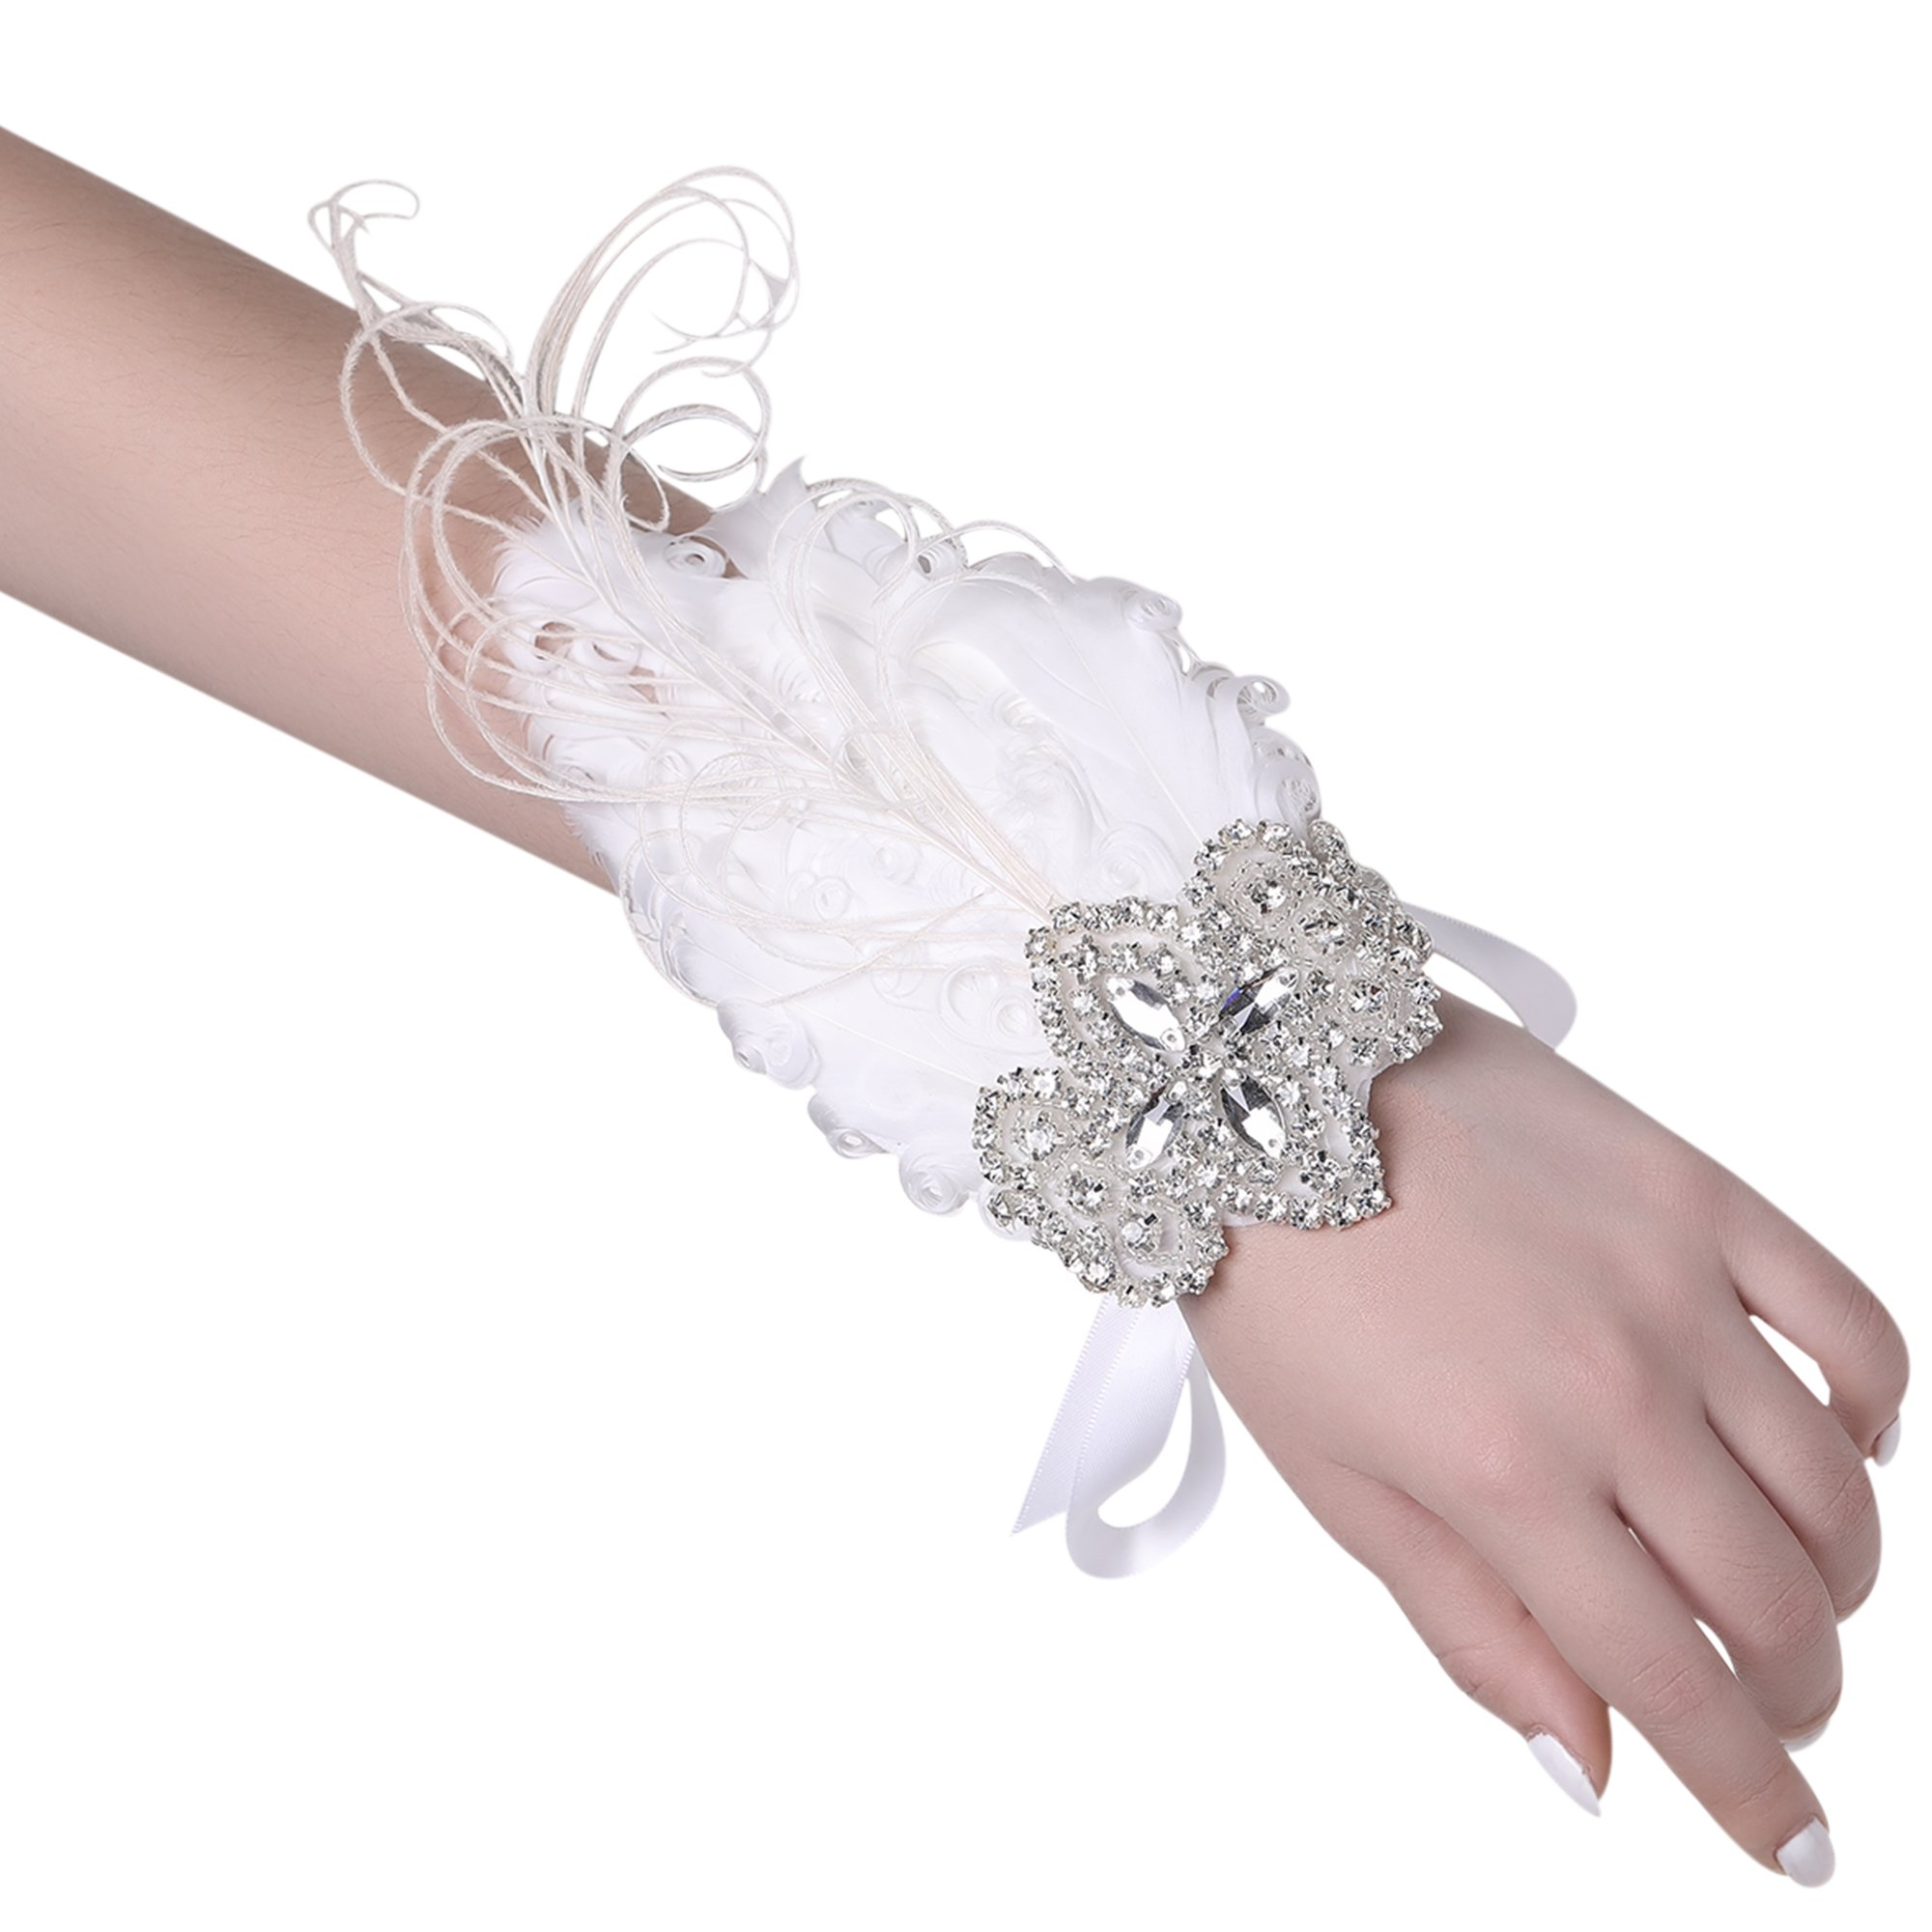 BABEYOND 1920s Wedding Wrist Corsage Gatsby Peacock Feather Bridal Wristband Corsage Roaring 20s Flapper Wedding Costume Accessories (White